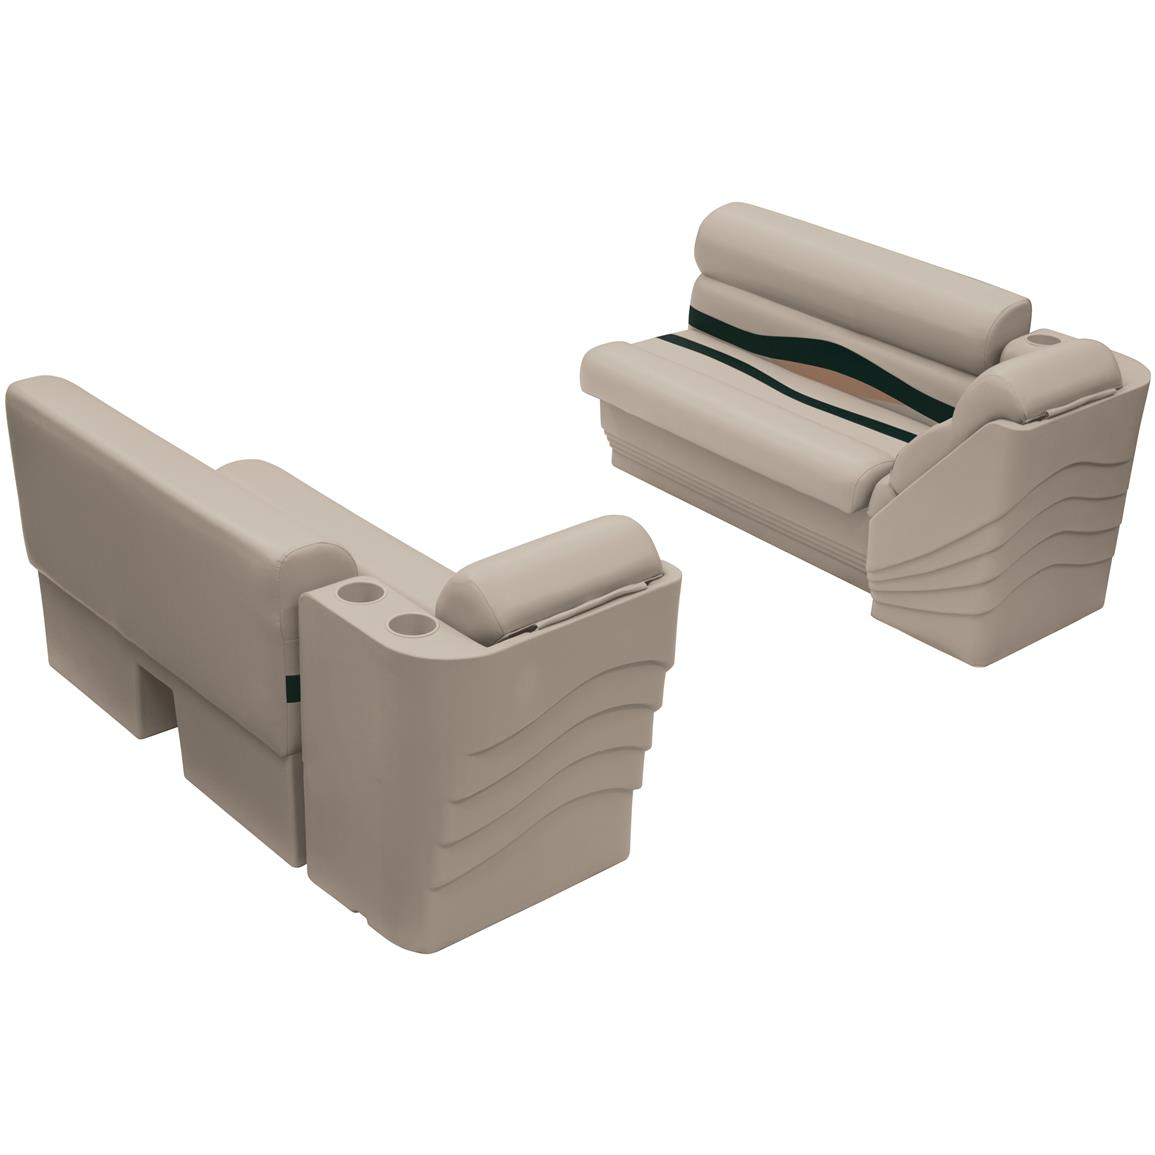 Wise® Premier Pontoon 45 inch Bench and Lean Back Set, Color E: Platinum Punch / Jade / Fawn